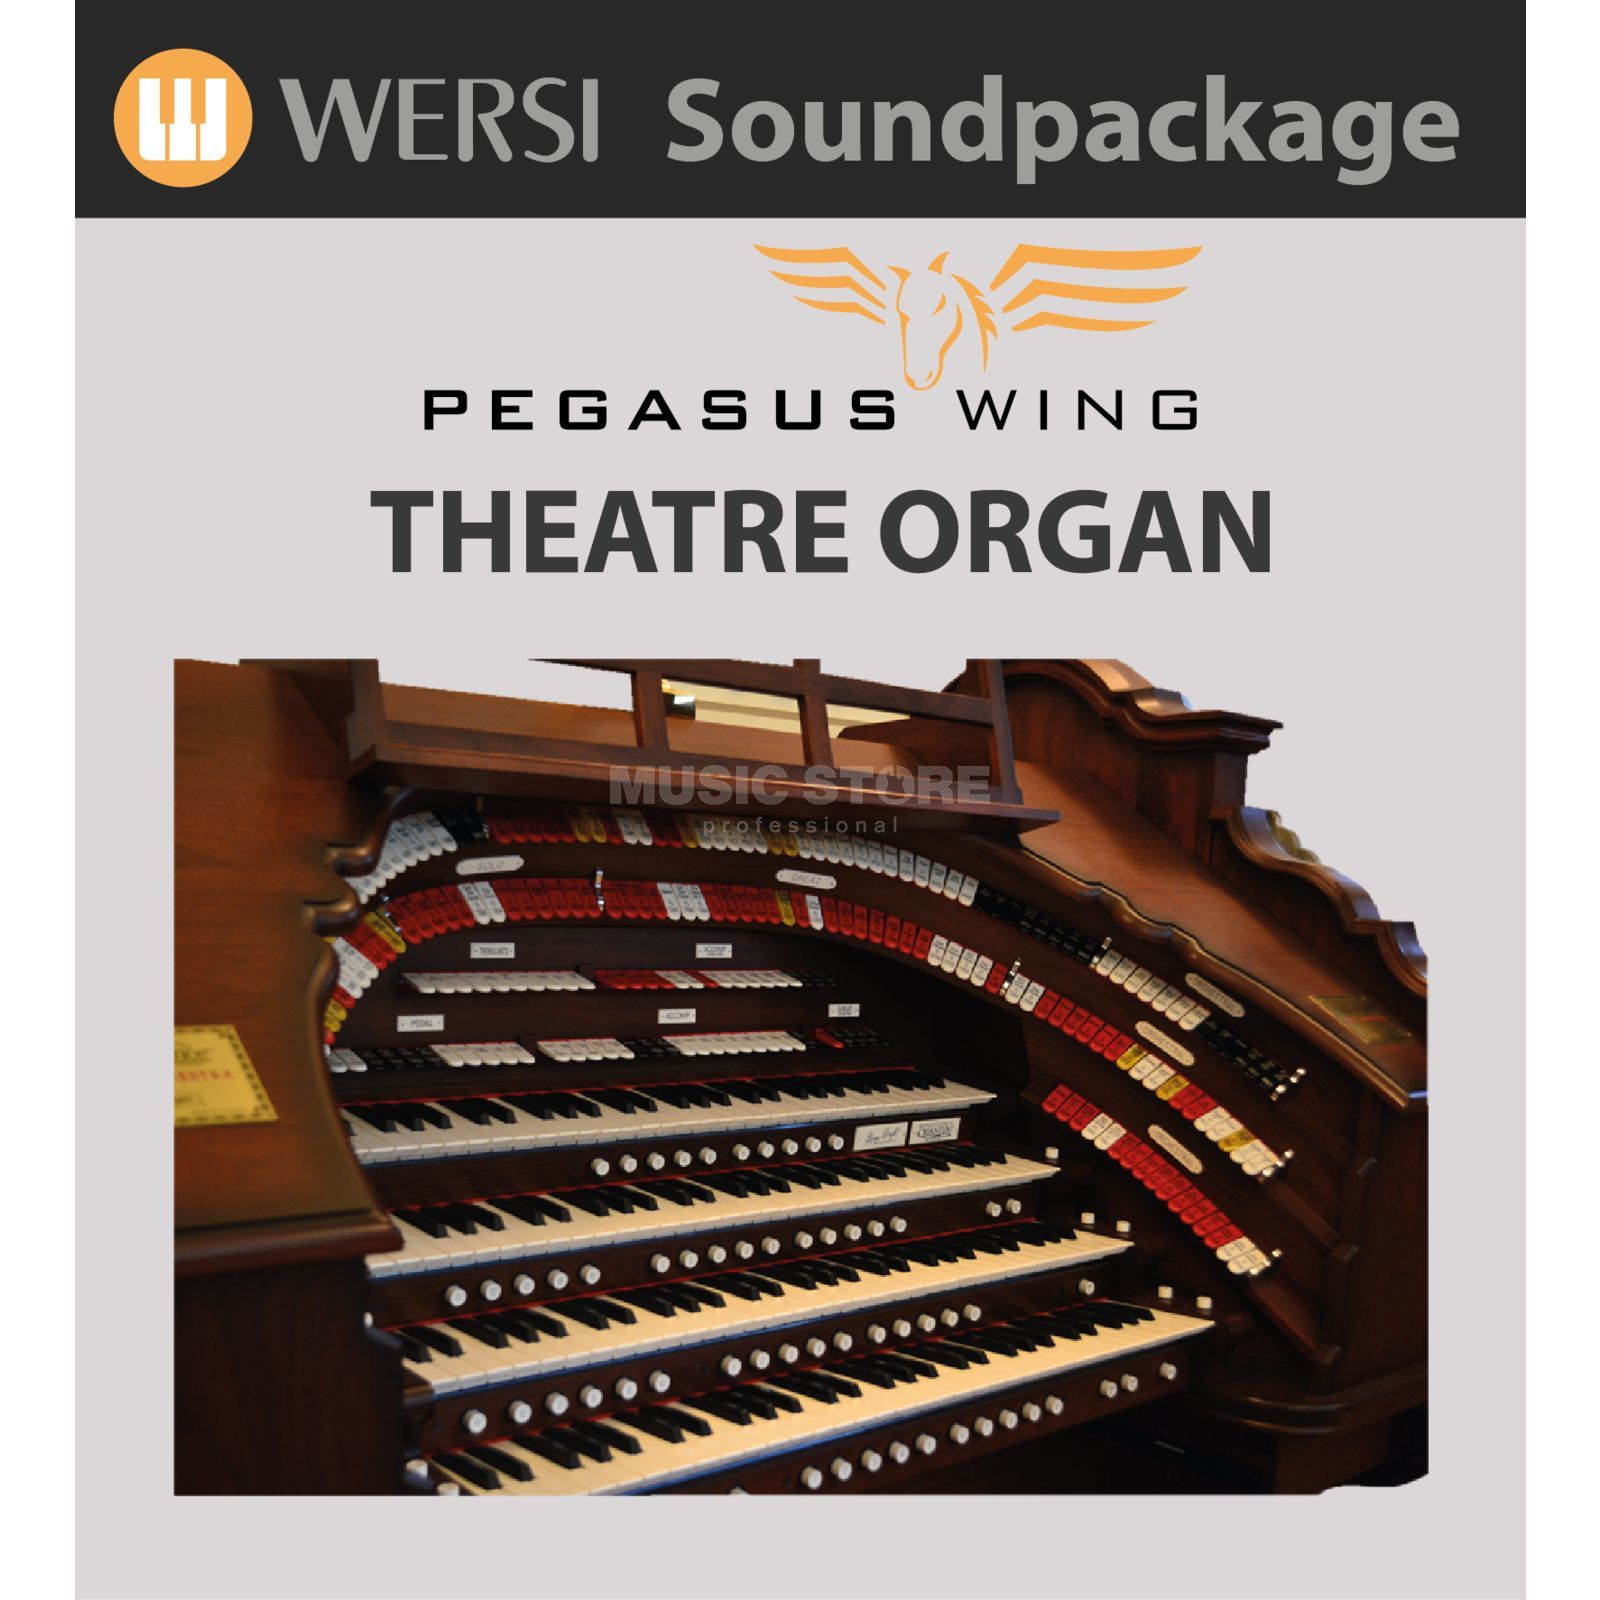 Wersi Theatre Sounds Soundpackage for Pegasus Wing Produktbillede